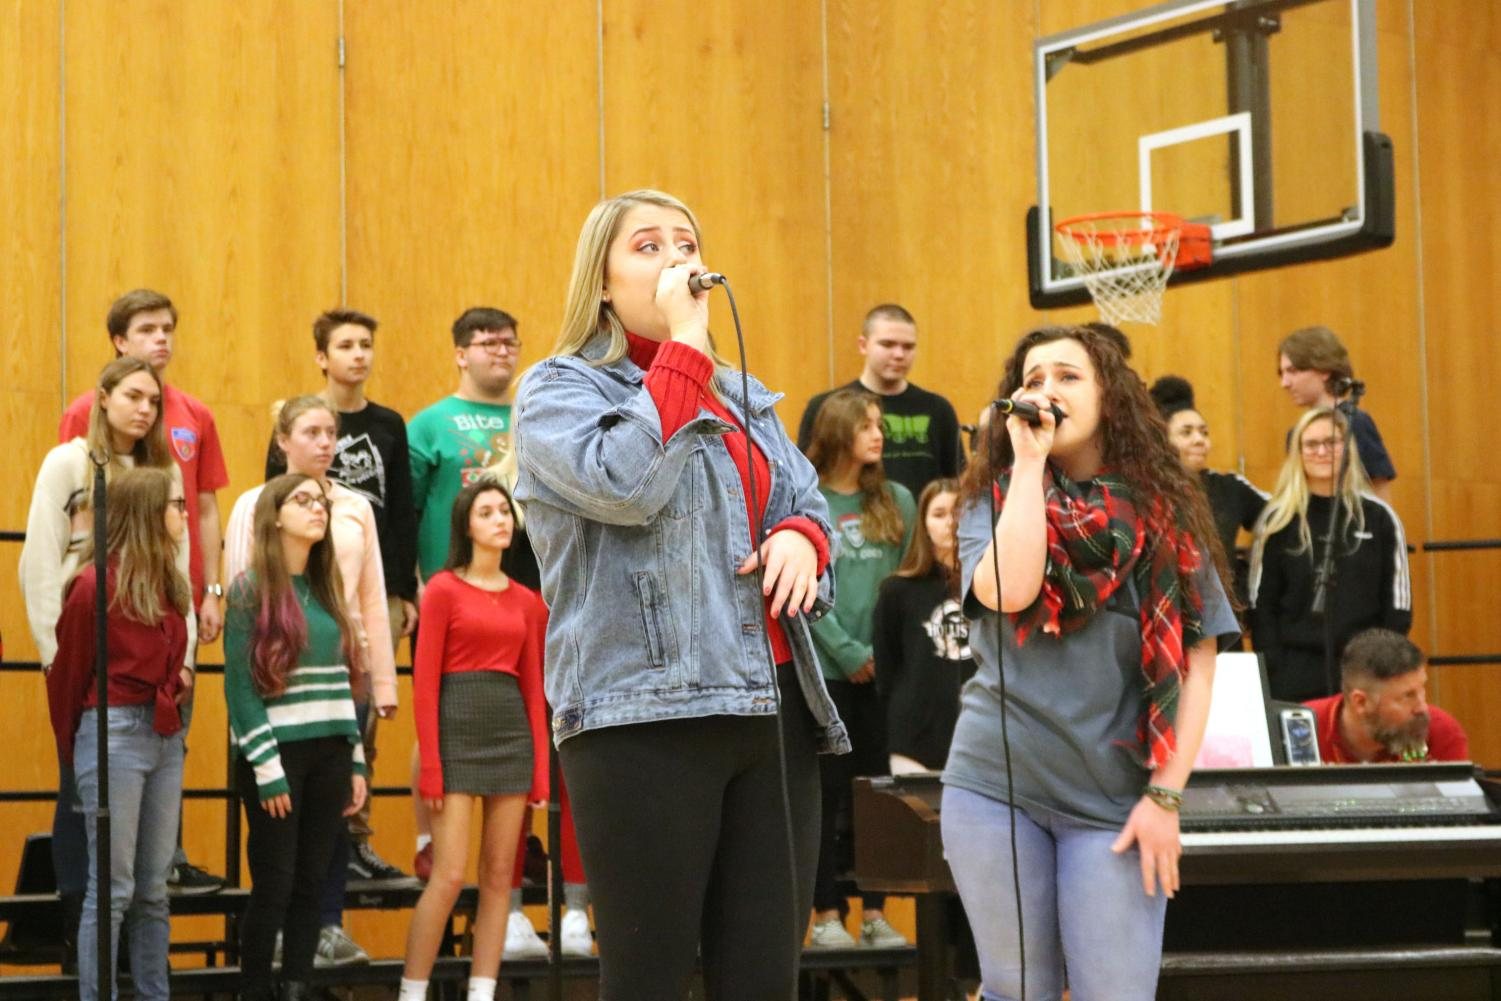 Seniors Jenna Maher and Autumn Decker sing Christmas songs in front of the student body, accompanied by the jazz band. On Dec. 20, the holiday concert was held in the main gym during SRT to get students in the holiday spirit.